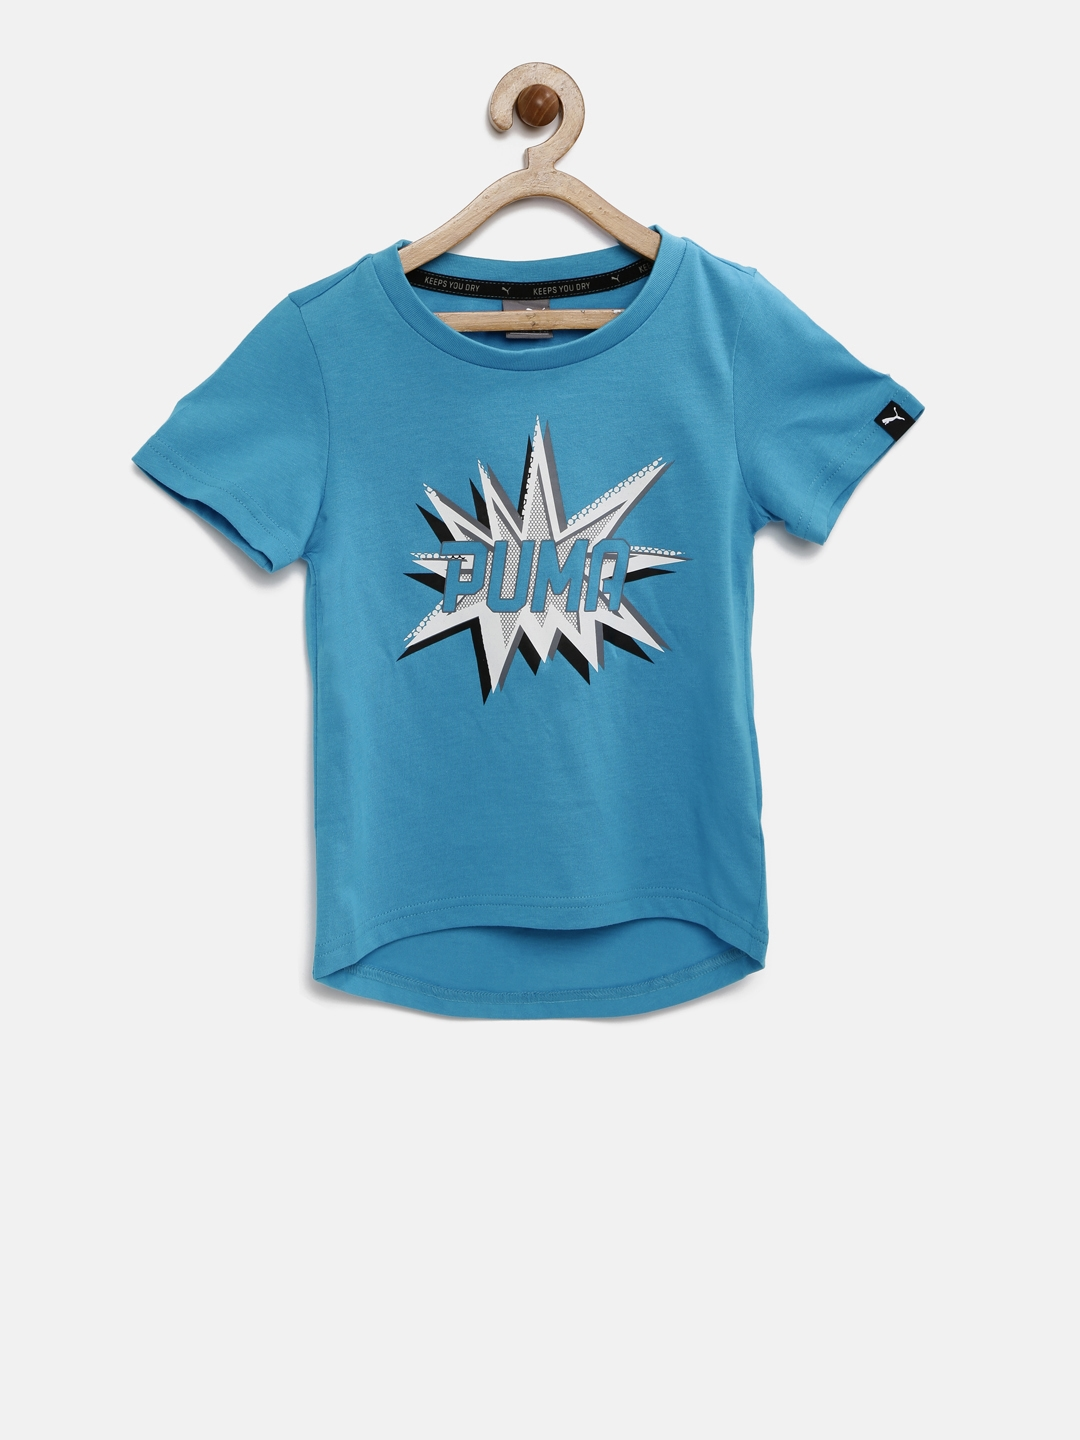 Buy Puma Boys Blue Pow Printed Round Neck T Shirt - Tshirts for Boys ... 0b8d3fcf2c